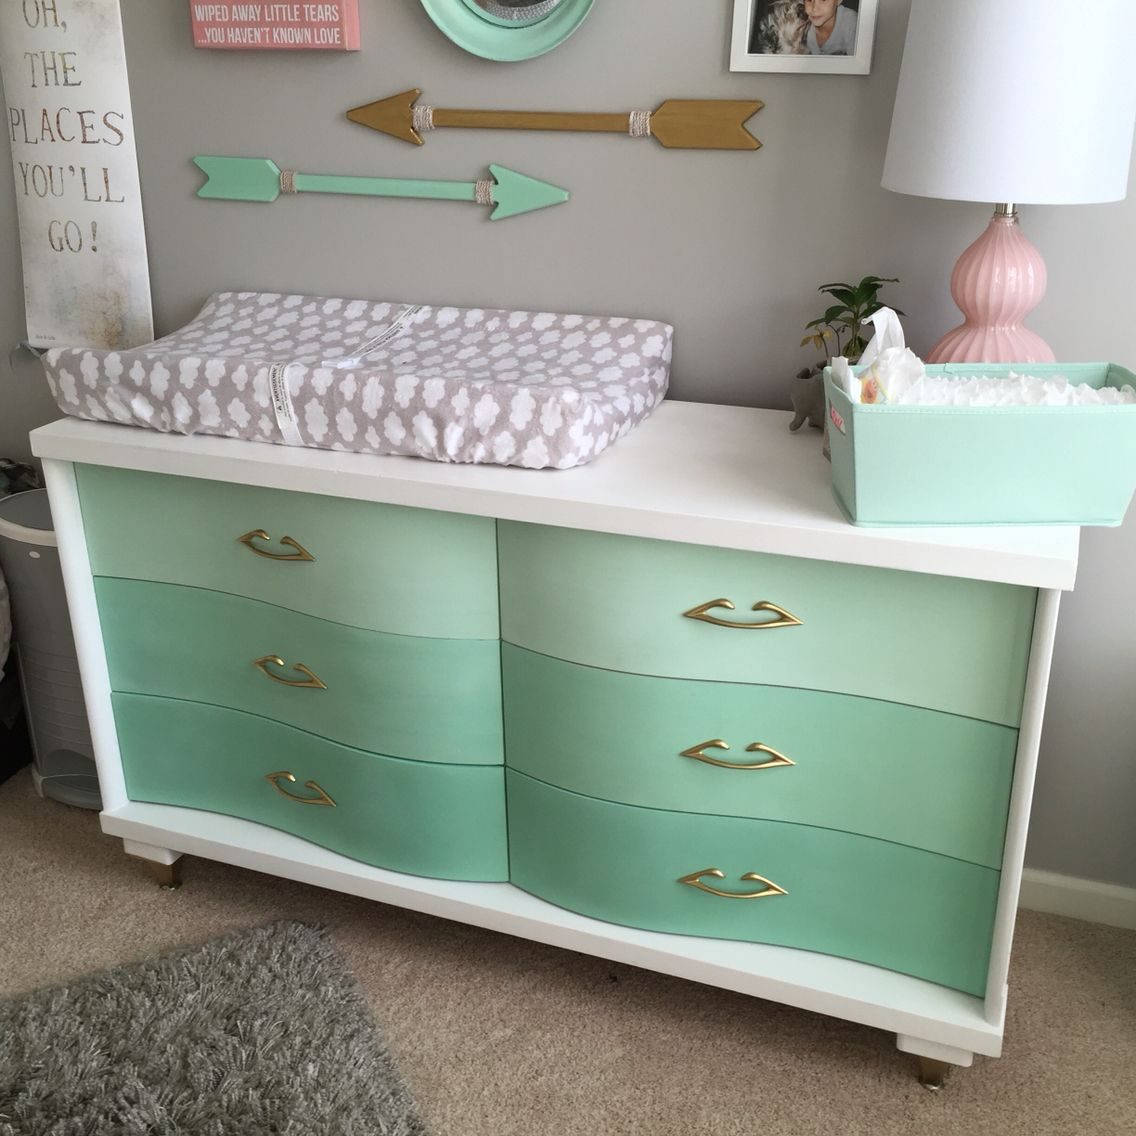 Ombré Drawers  So Cute Beautiful Vintage Dresser Redone In Annie Sloan  Chalk Paint Ombré Mint U0026 White. Nursery Changing Table Mint And Gold.